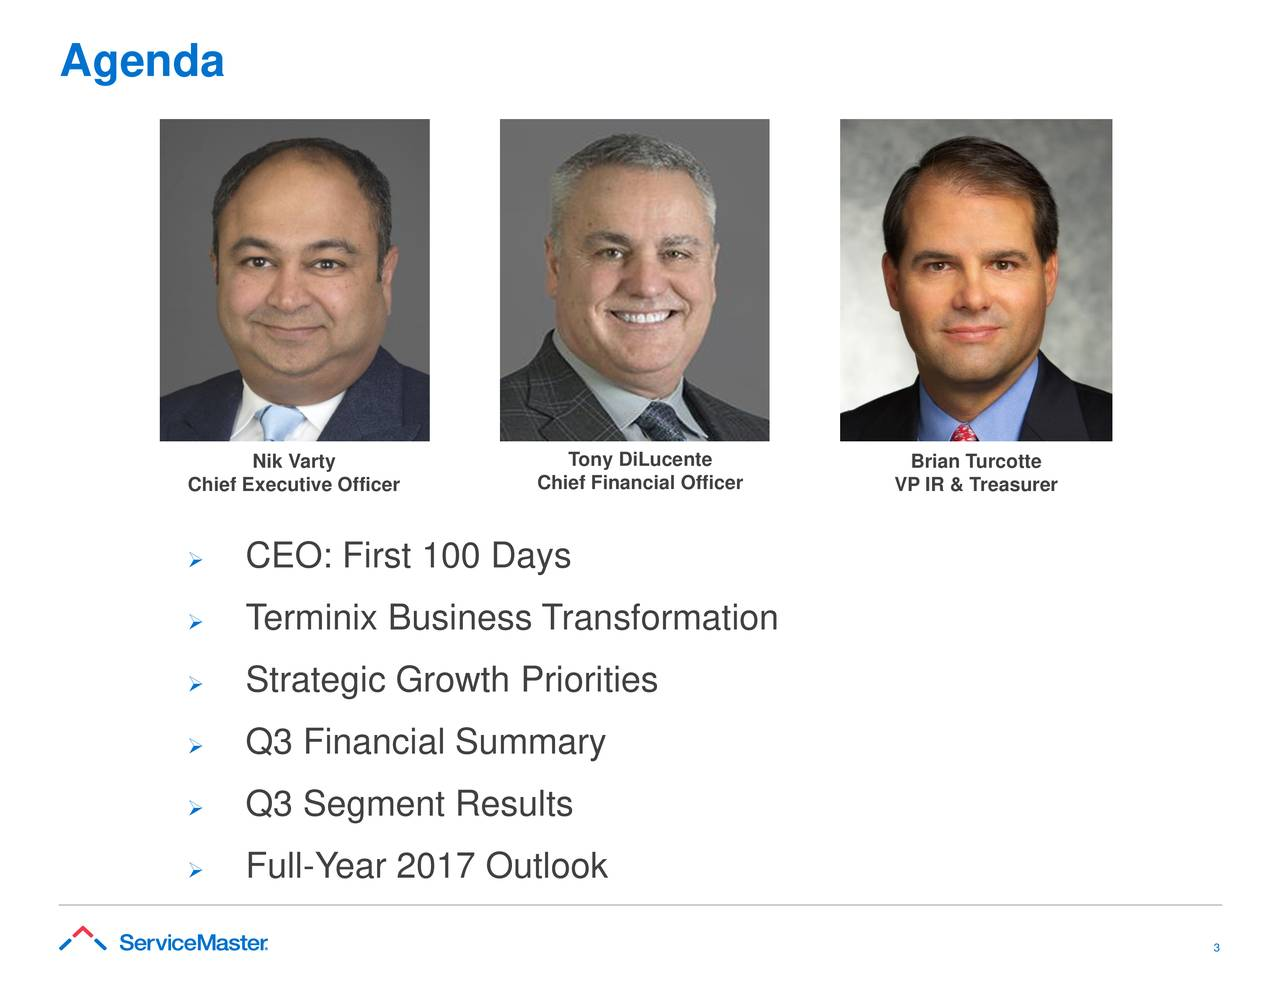 Nik Varty Tony DiLucente Brian Turcotte Chief Executive Officer Chief Financial Officer VP IR & Treasurer  CEO: First 100 Days  Terminix Business Transformation  Strategic Growth Priorities  Q3 Financial Summary  Q3 Segment Results  Full-Year 2017 Outlook 3